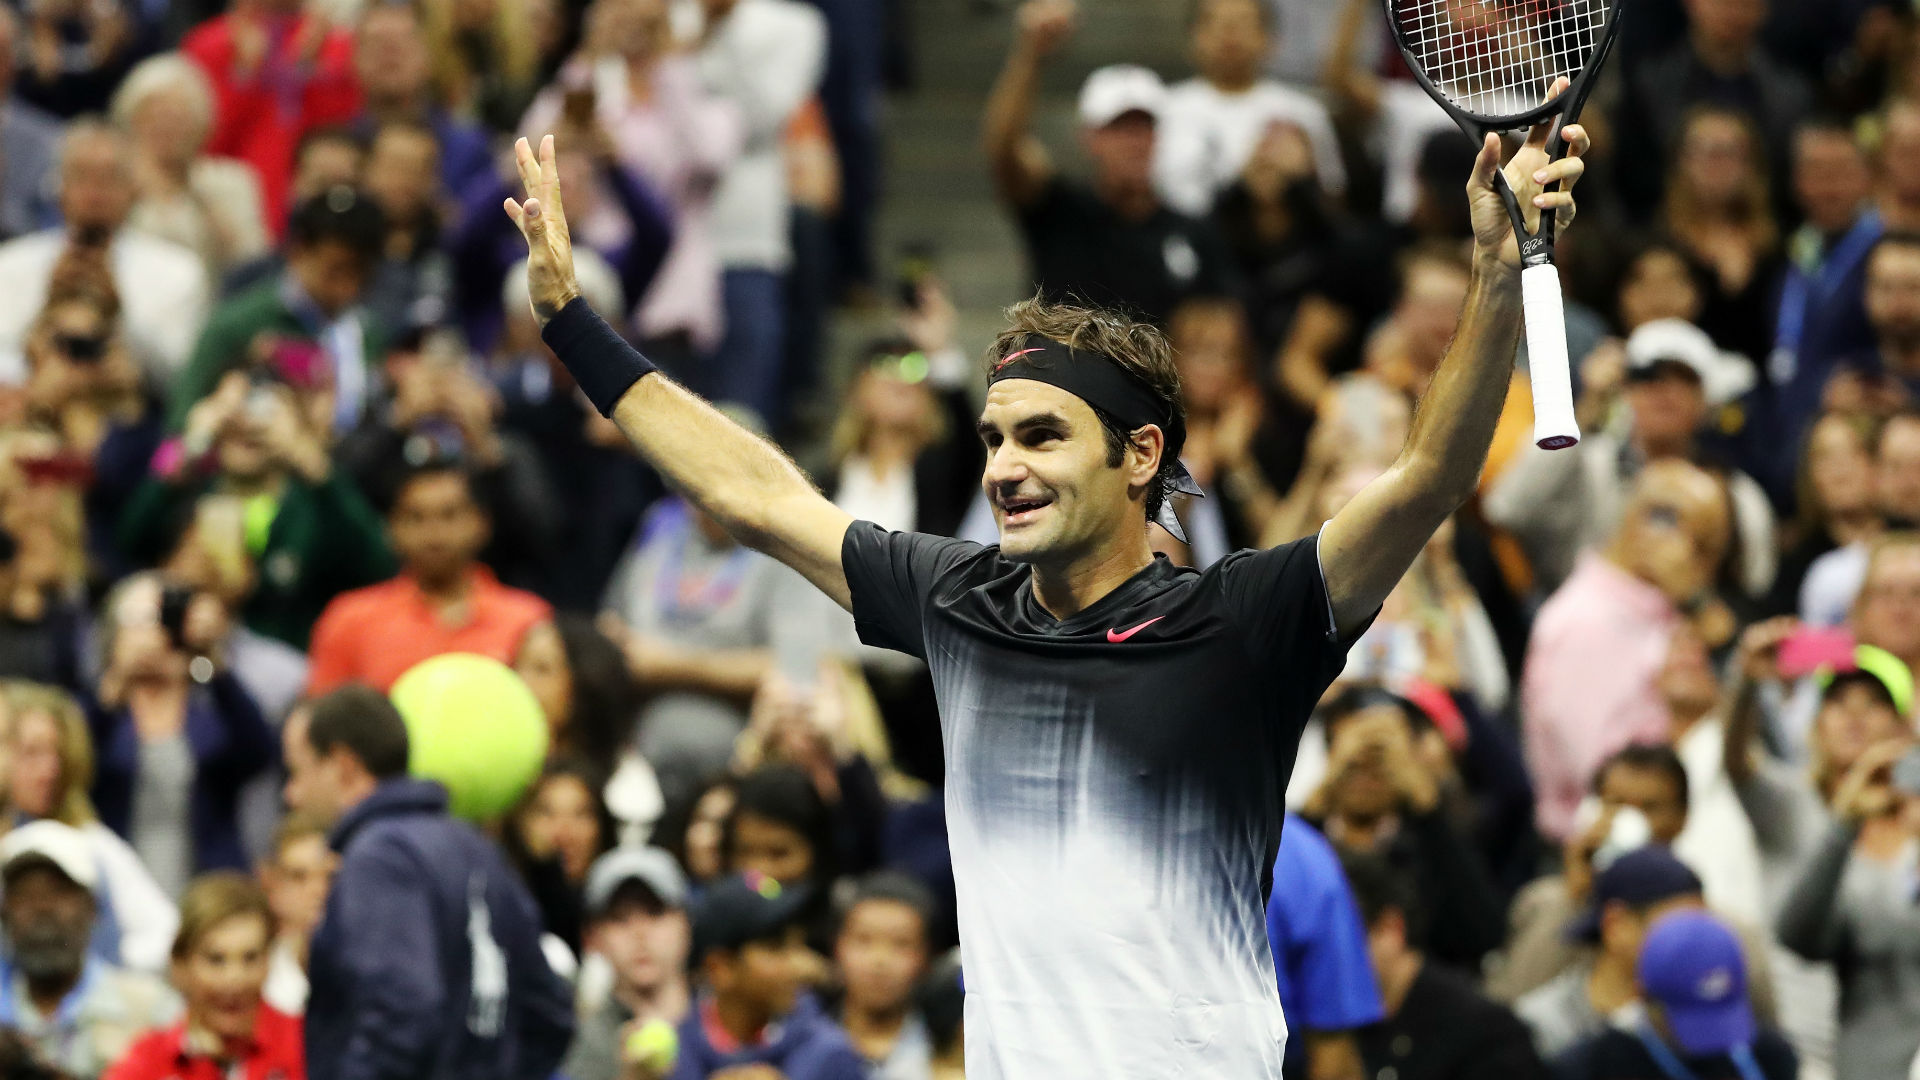 Rafael Nadal Or Roger Federer? Who Will Win The 2017 US Open?